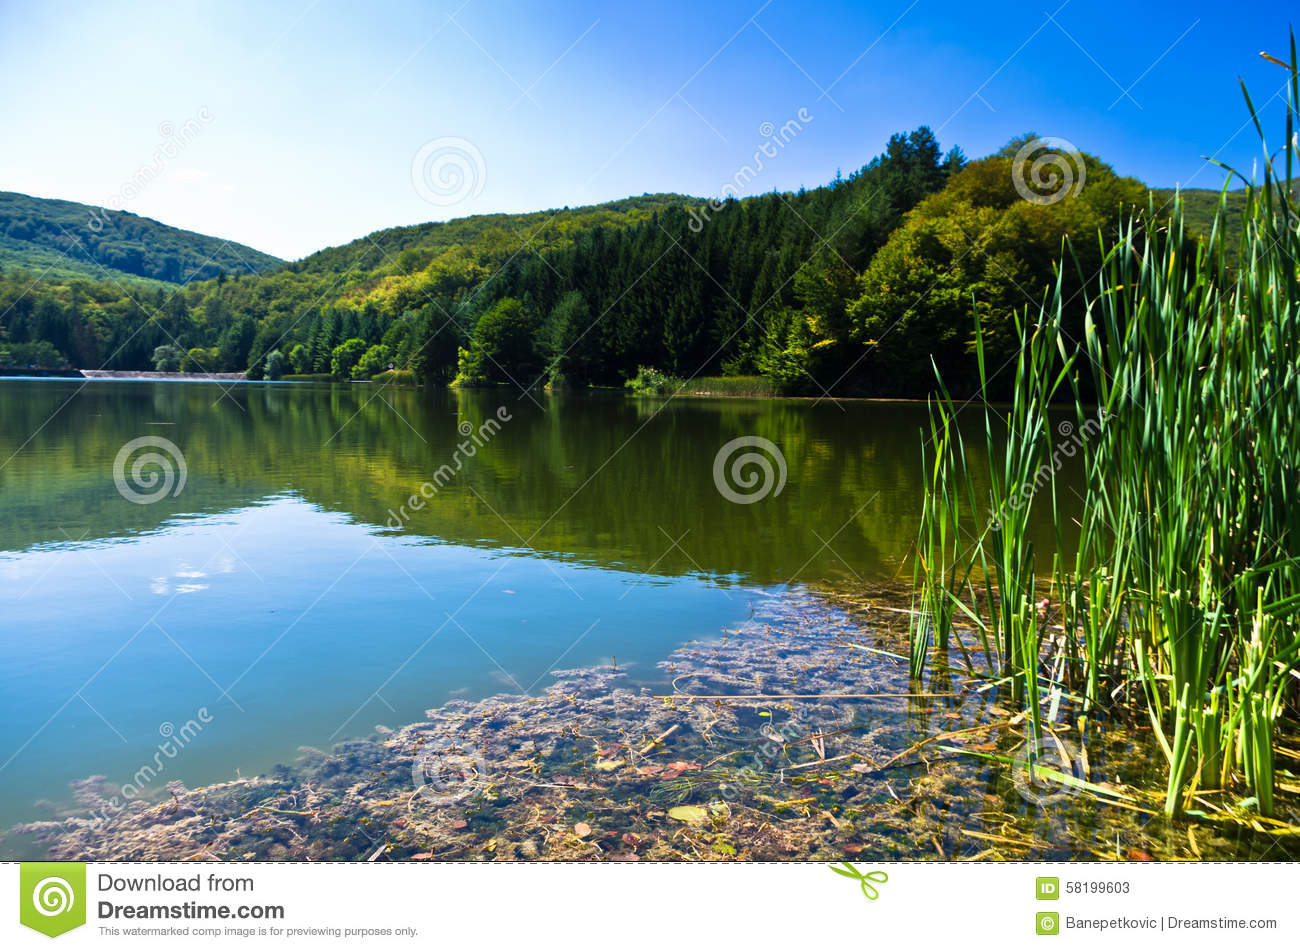 Beautiful Nature And Greenery At The Lake In Semenic National Park.